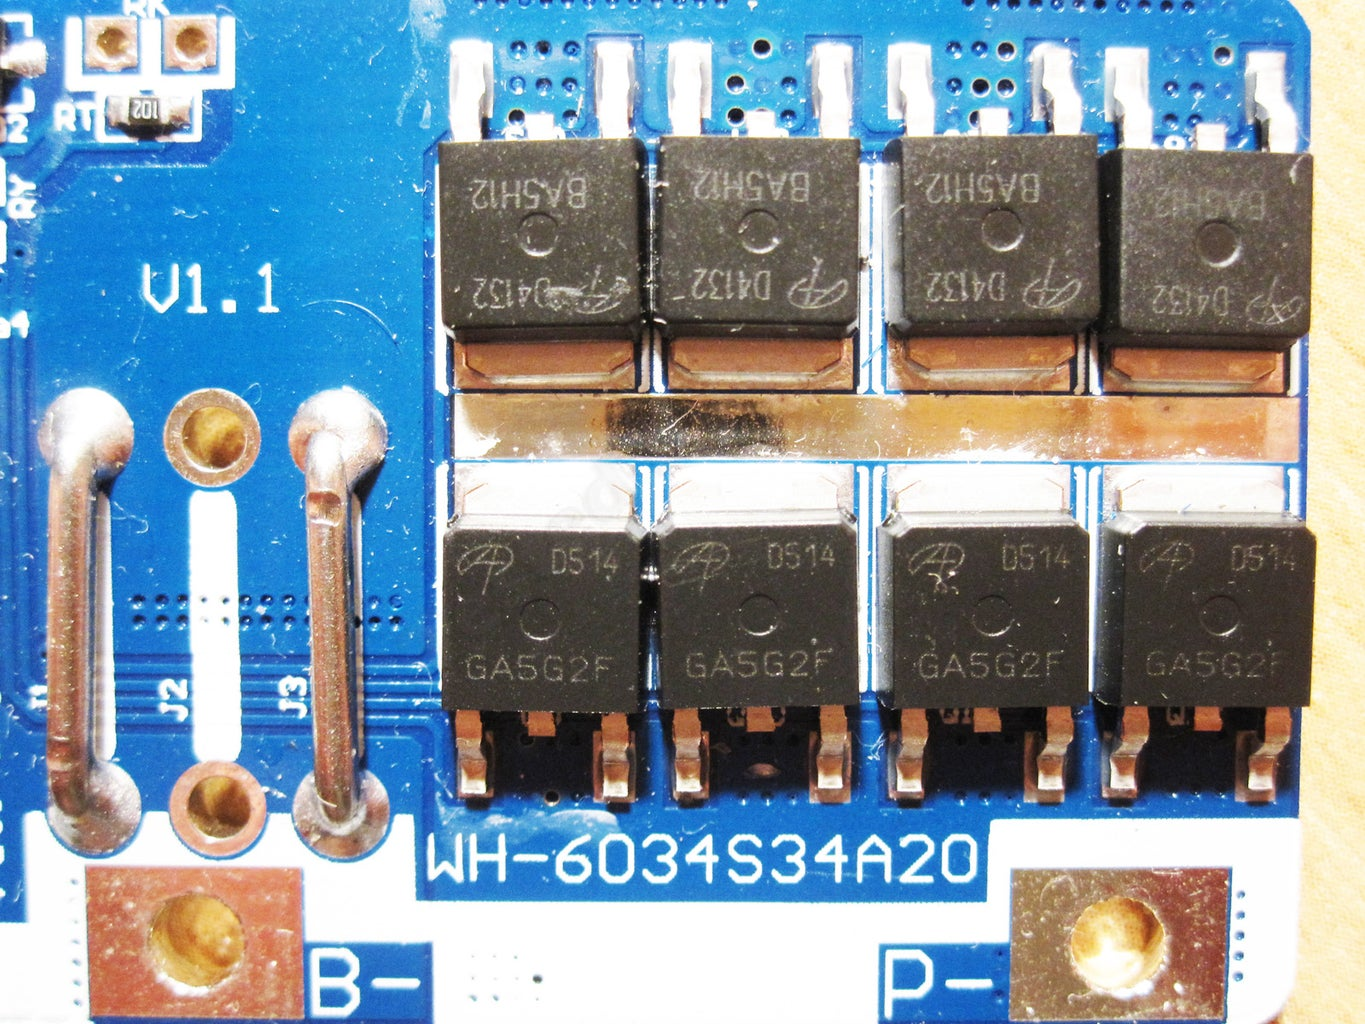 Description of Protection Board and Components